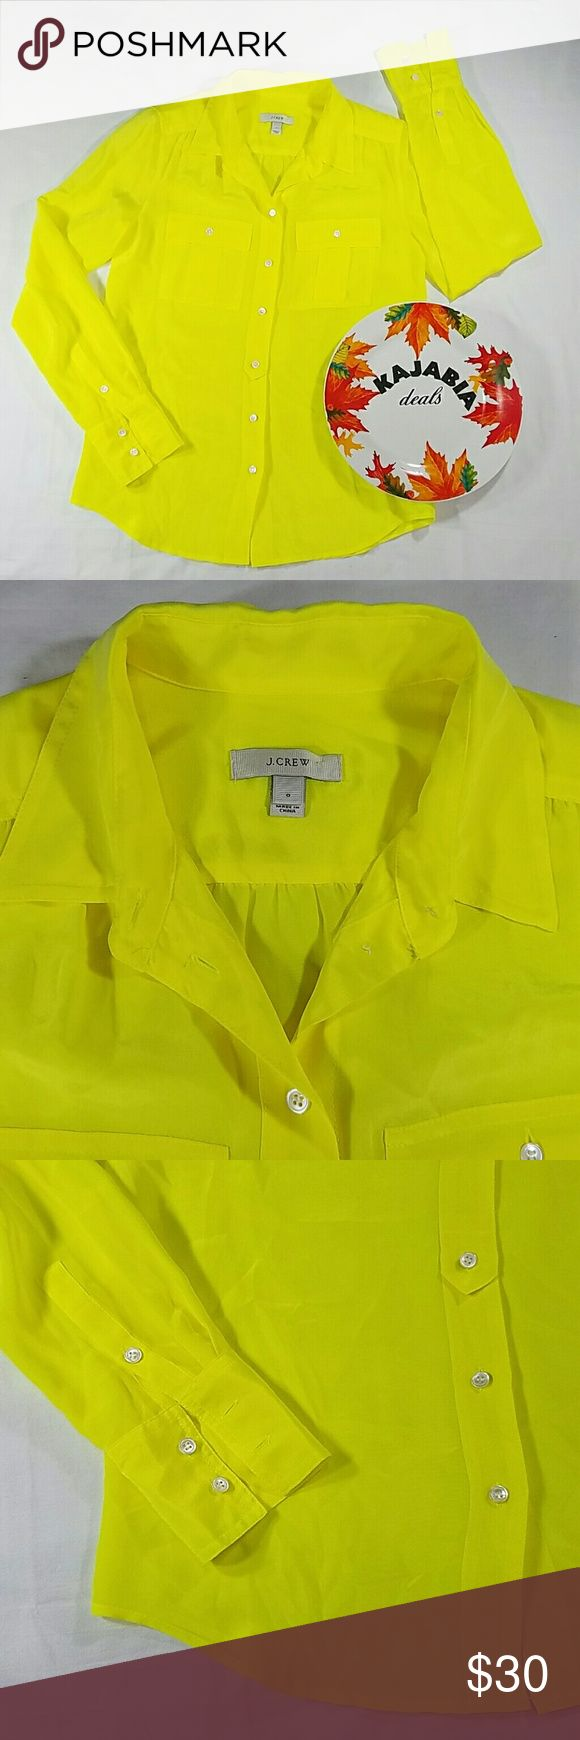 """💥NEW LISTING💥J.CREW 100%Silk Top. Size 0 Excellent condition J. Crew Long sleeve Button down Size.. 0 Pre owned. No rips. No spots Color.. neon yellow Fabric..100% silk Measurements..18"""" pit to pit..25"""" length Nice looking and in perfect condition Wear it with skinny jeans and boots this season... easy to wear up and down Dry clean only..  Perfect for any occasion!!  🚫NO TRADES 🚫NO MODELING 🔵REASONABLE OFFERS WELCOME !! J. Crew Tops Button Down Shirts"""